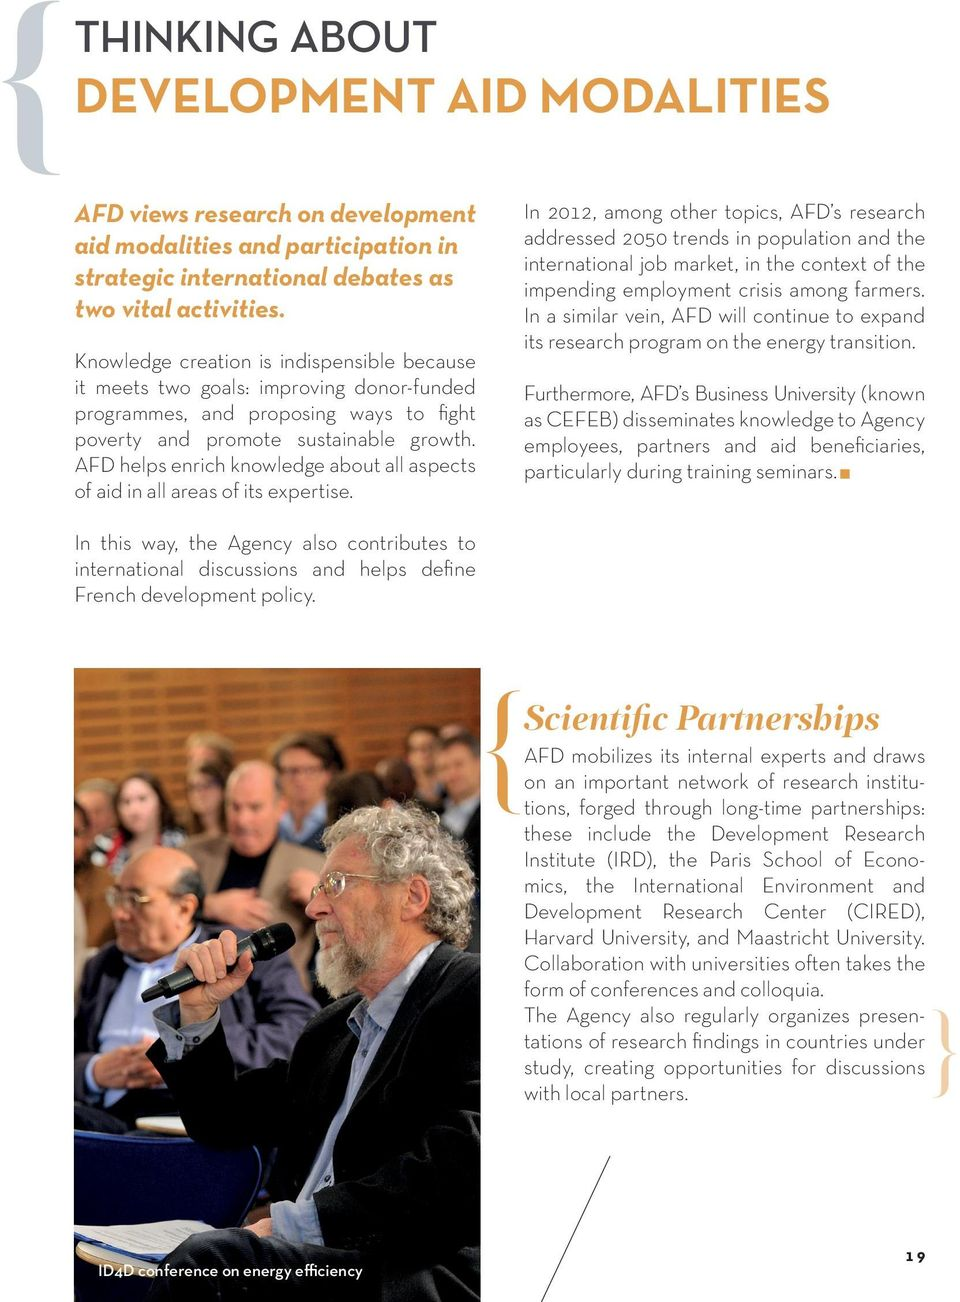 AFD helps enrich knowledge about all aspects of aid in all areas of its expertise.